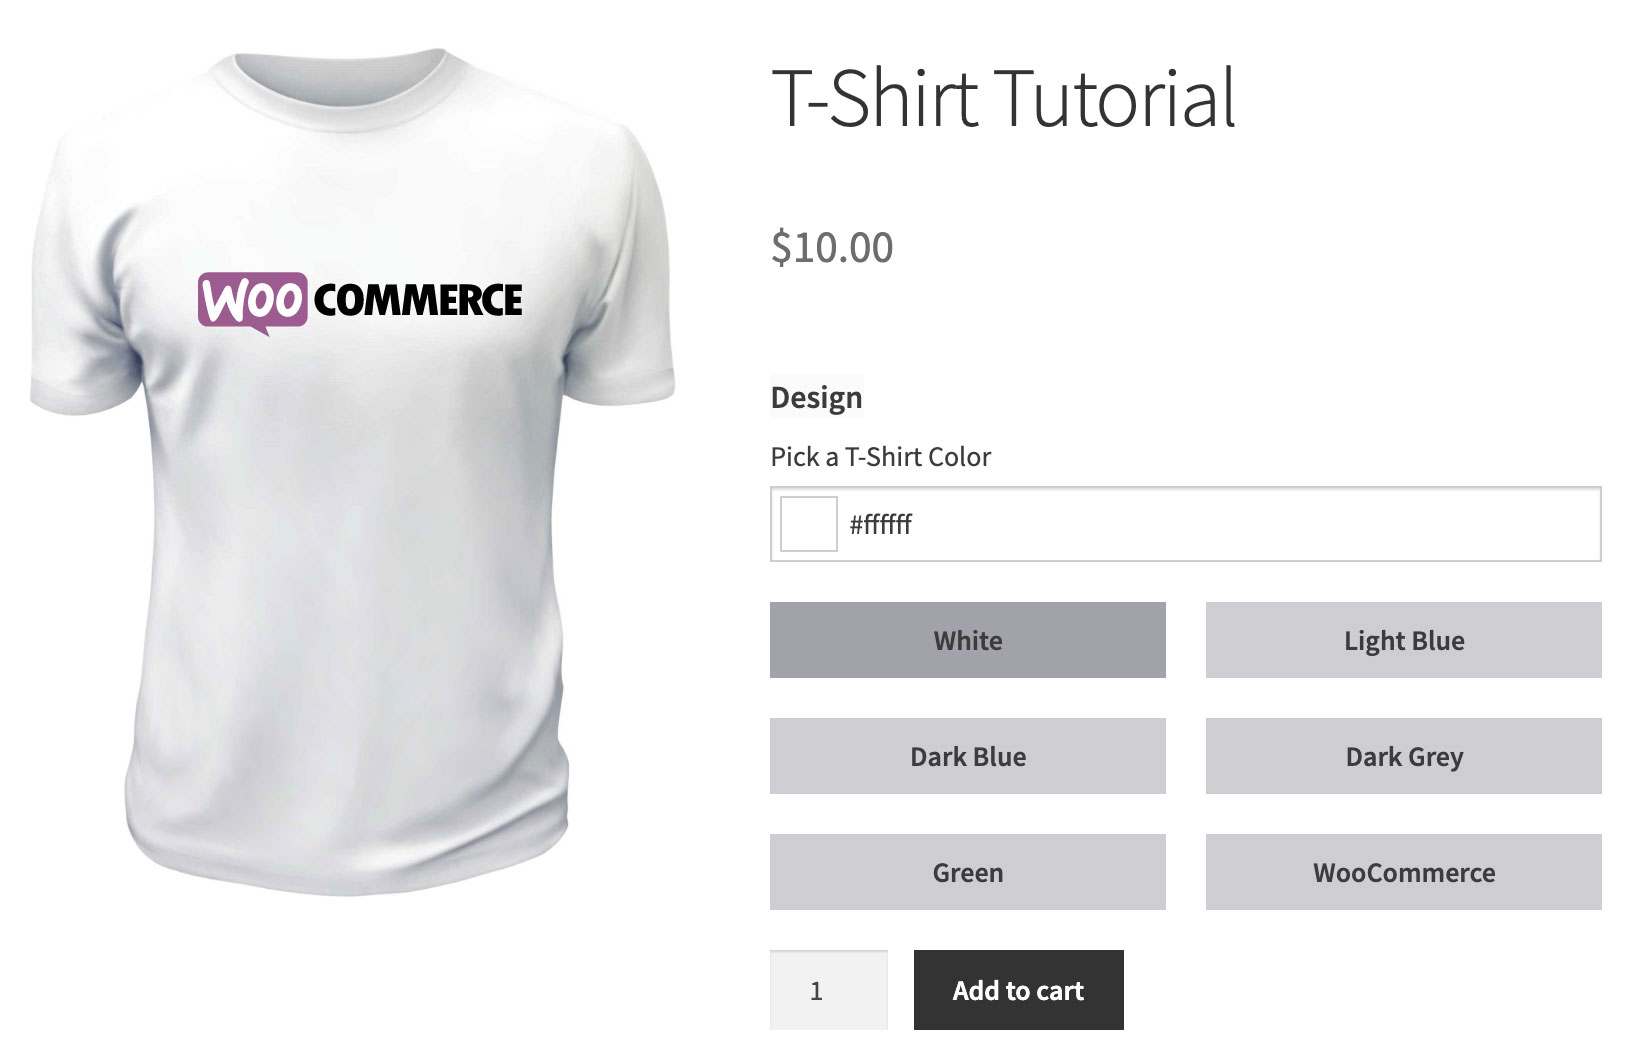 Customizable T-Shirt Product Tutorial - Finished Product